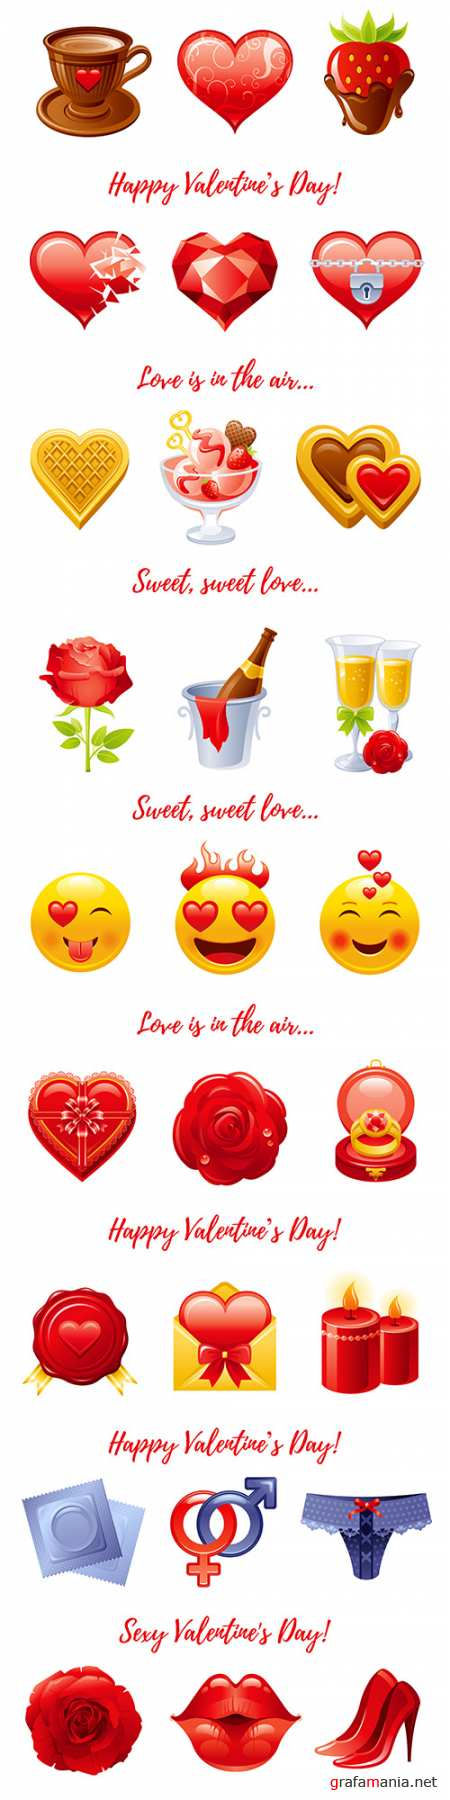 Happy Valentine's Day cartoon banner elements